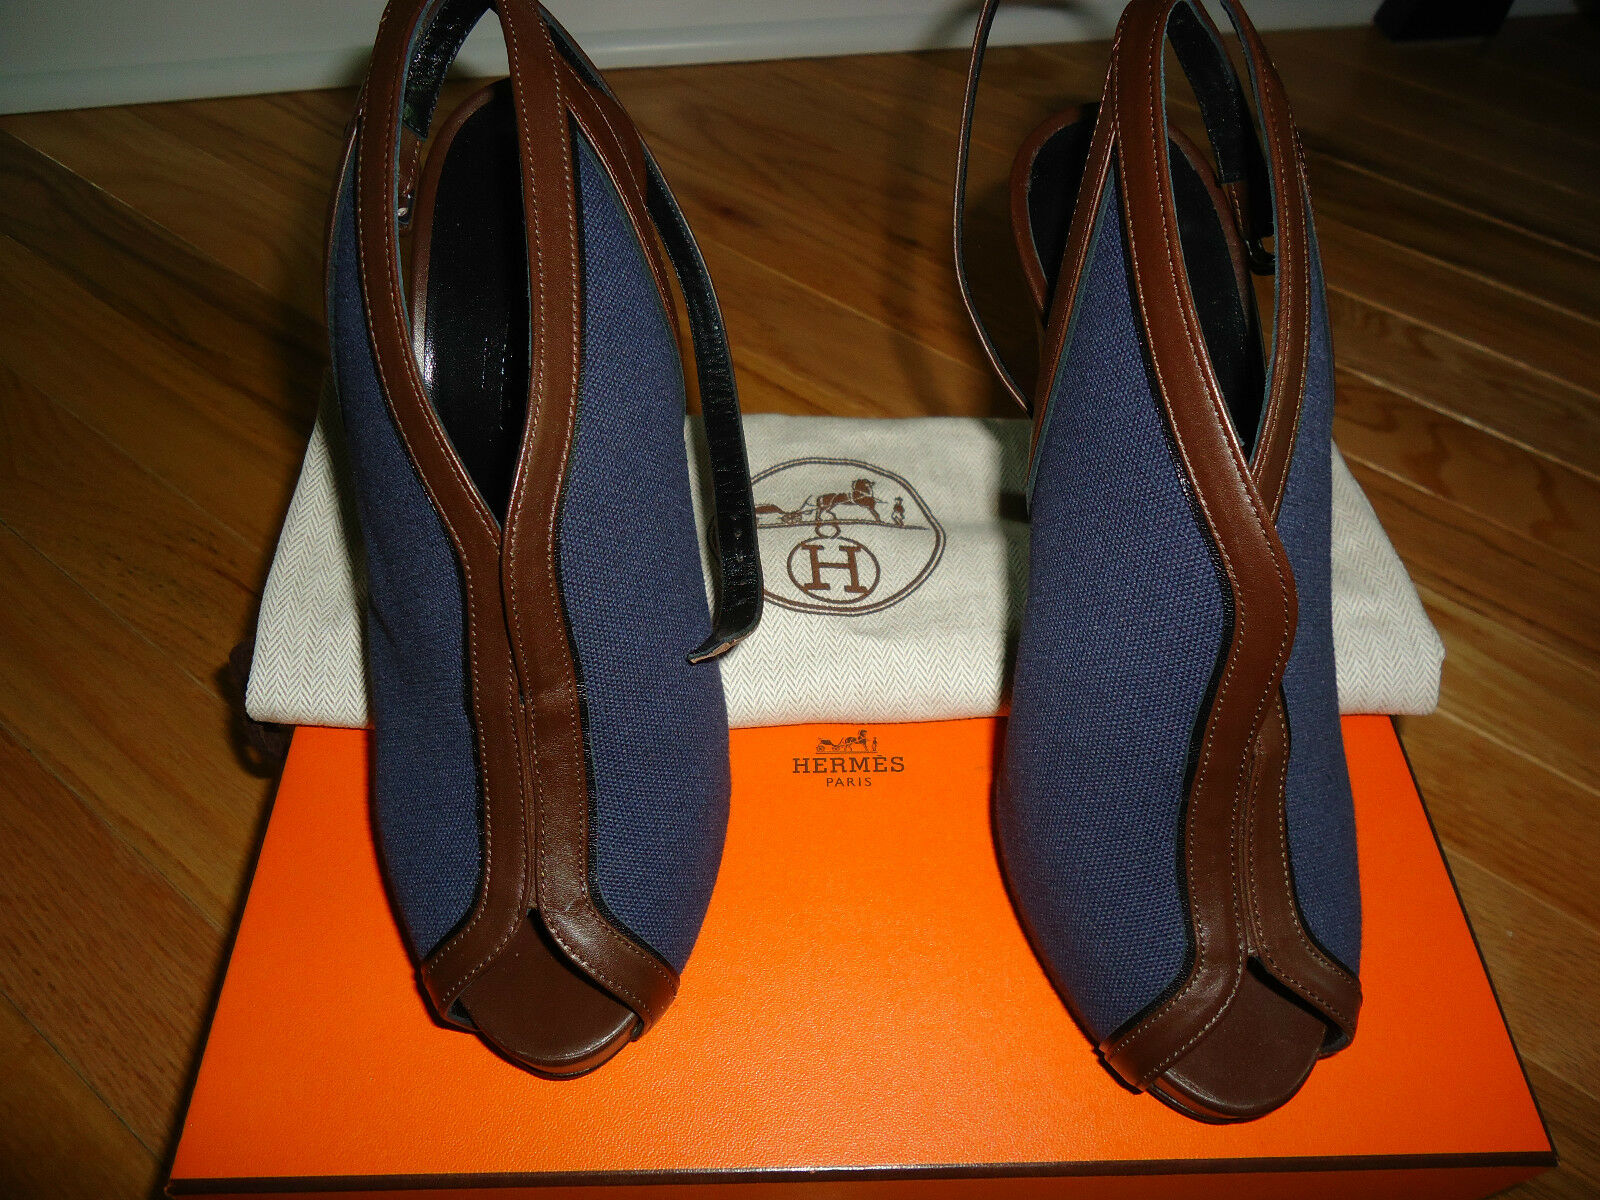 NIB HERMES CALFSKIN  FABRIC SHOES SZ 37.5